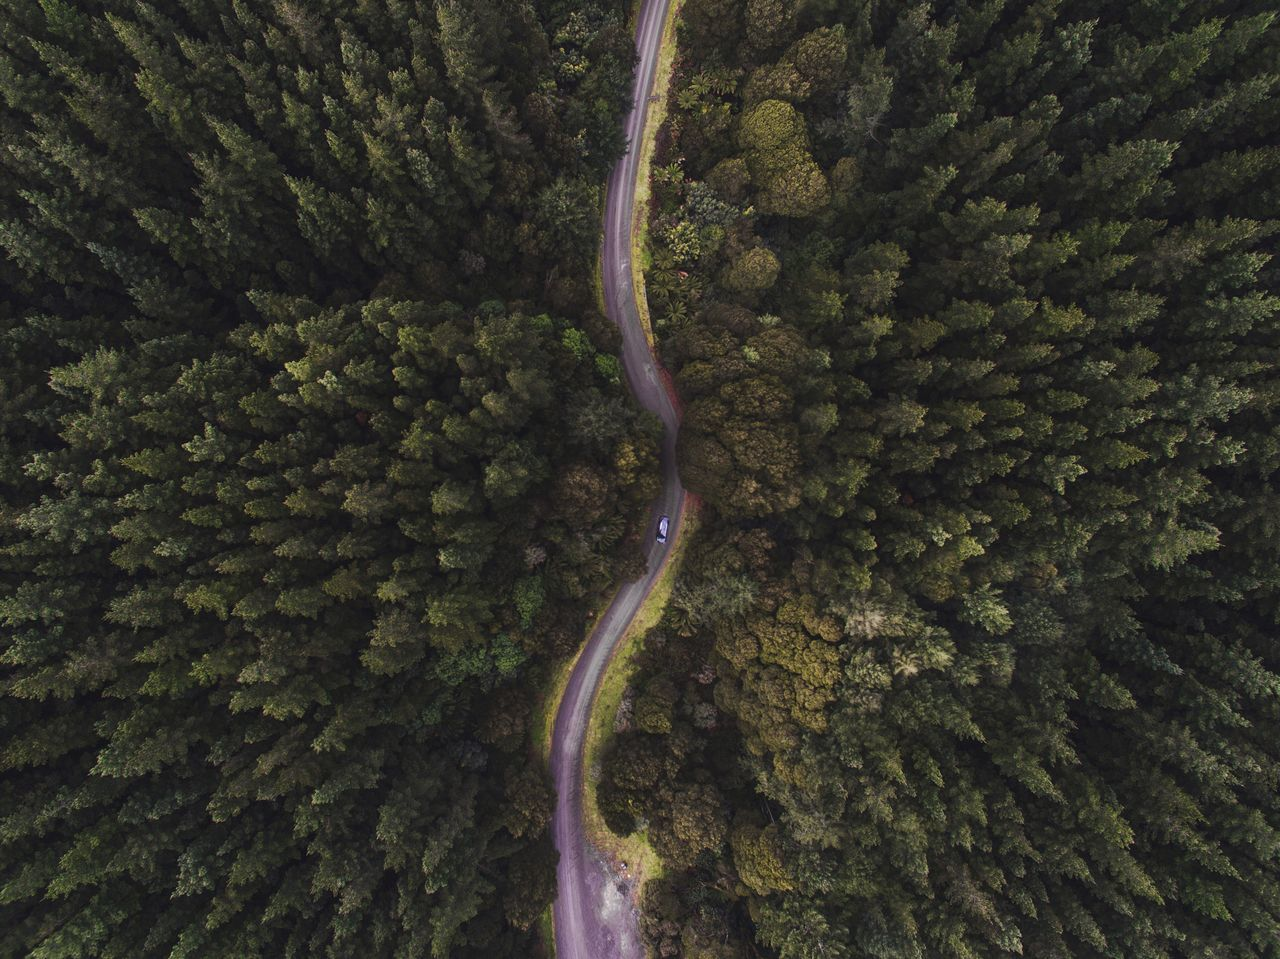 Pivotal Ideas Drone dronephotography colour palette view from above pine trees forest Green outdoors wilderness adventure road trip A Bird's Eye View